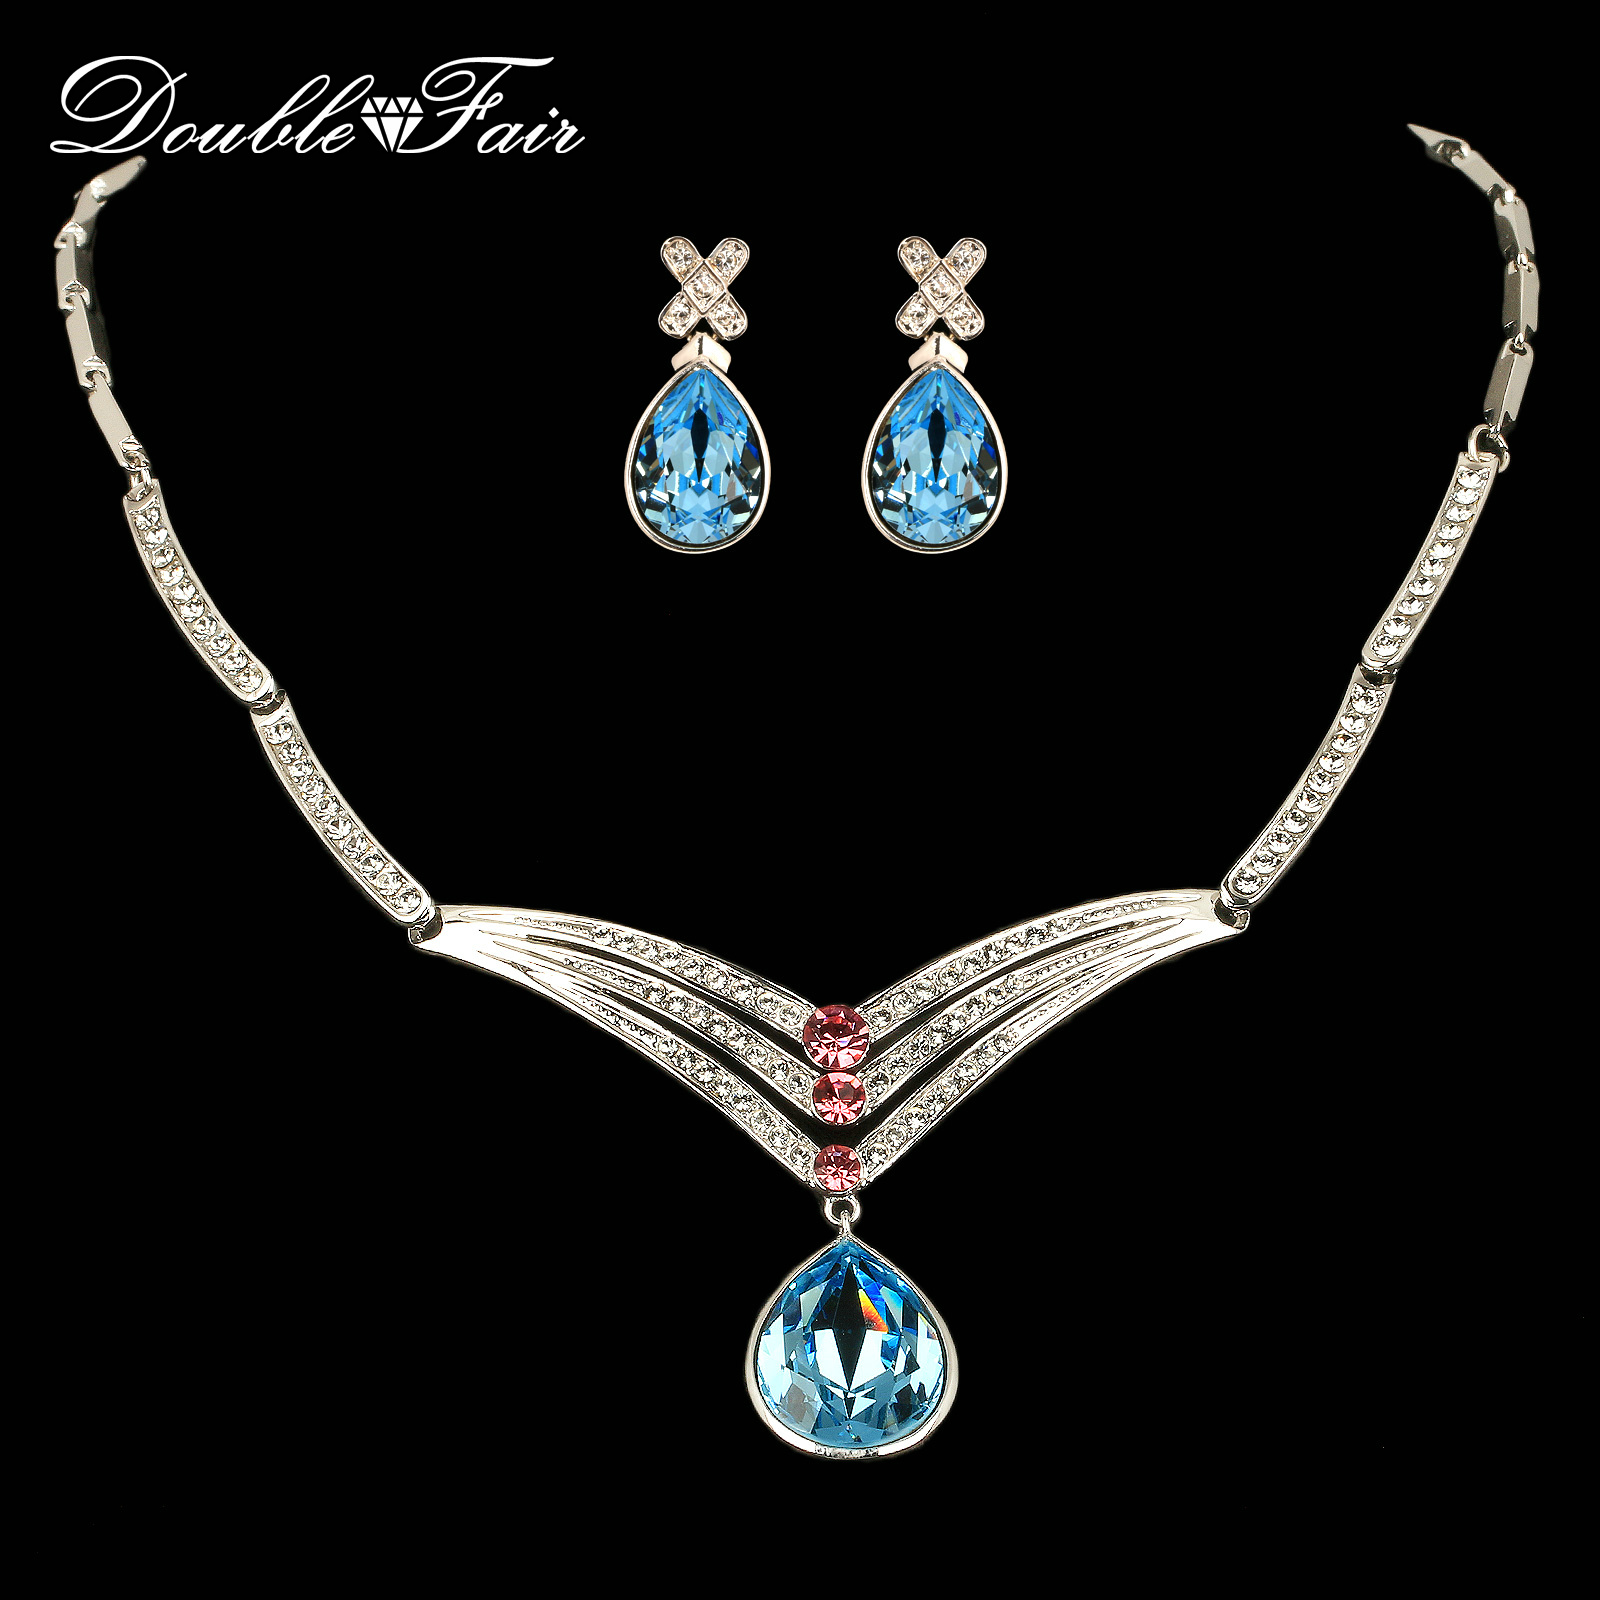 Big African Blue Crystal Necklaces & Pendant Earrings Sets Wholesale Crystal Fashion Wedding Jewelry for Women DFS310 viennois new blue crystal fashion rhinestone pendant earrings ring bracelet and long necklace sets for women jewelry sets